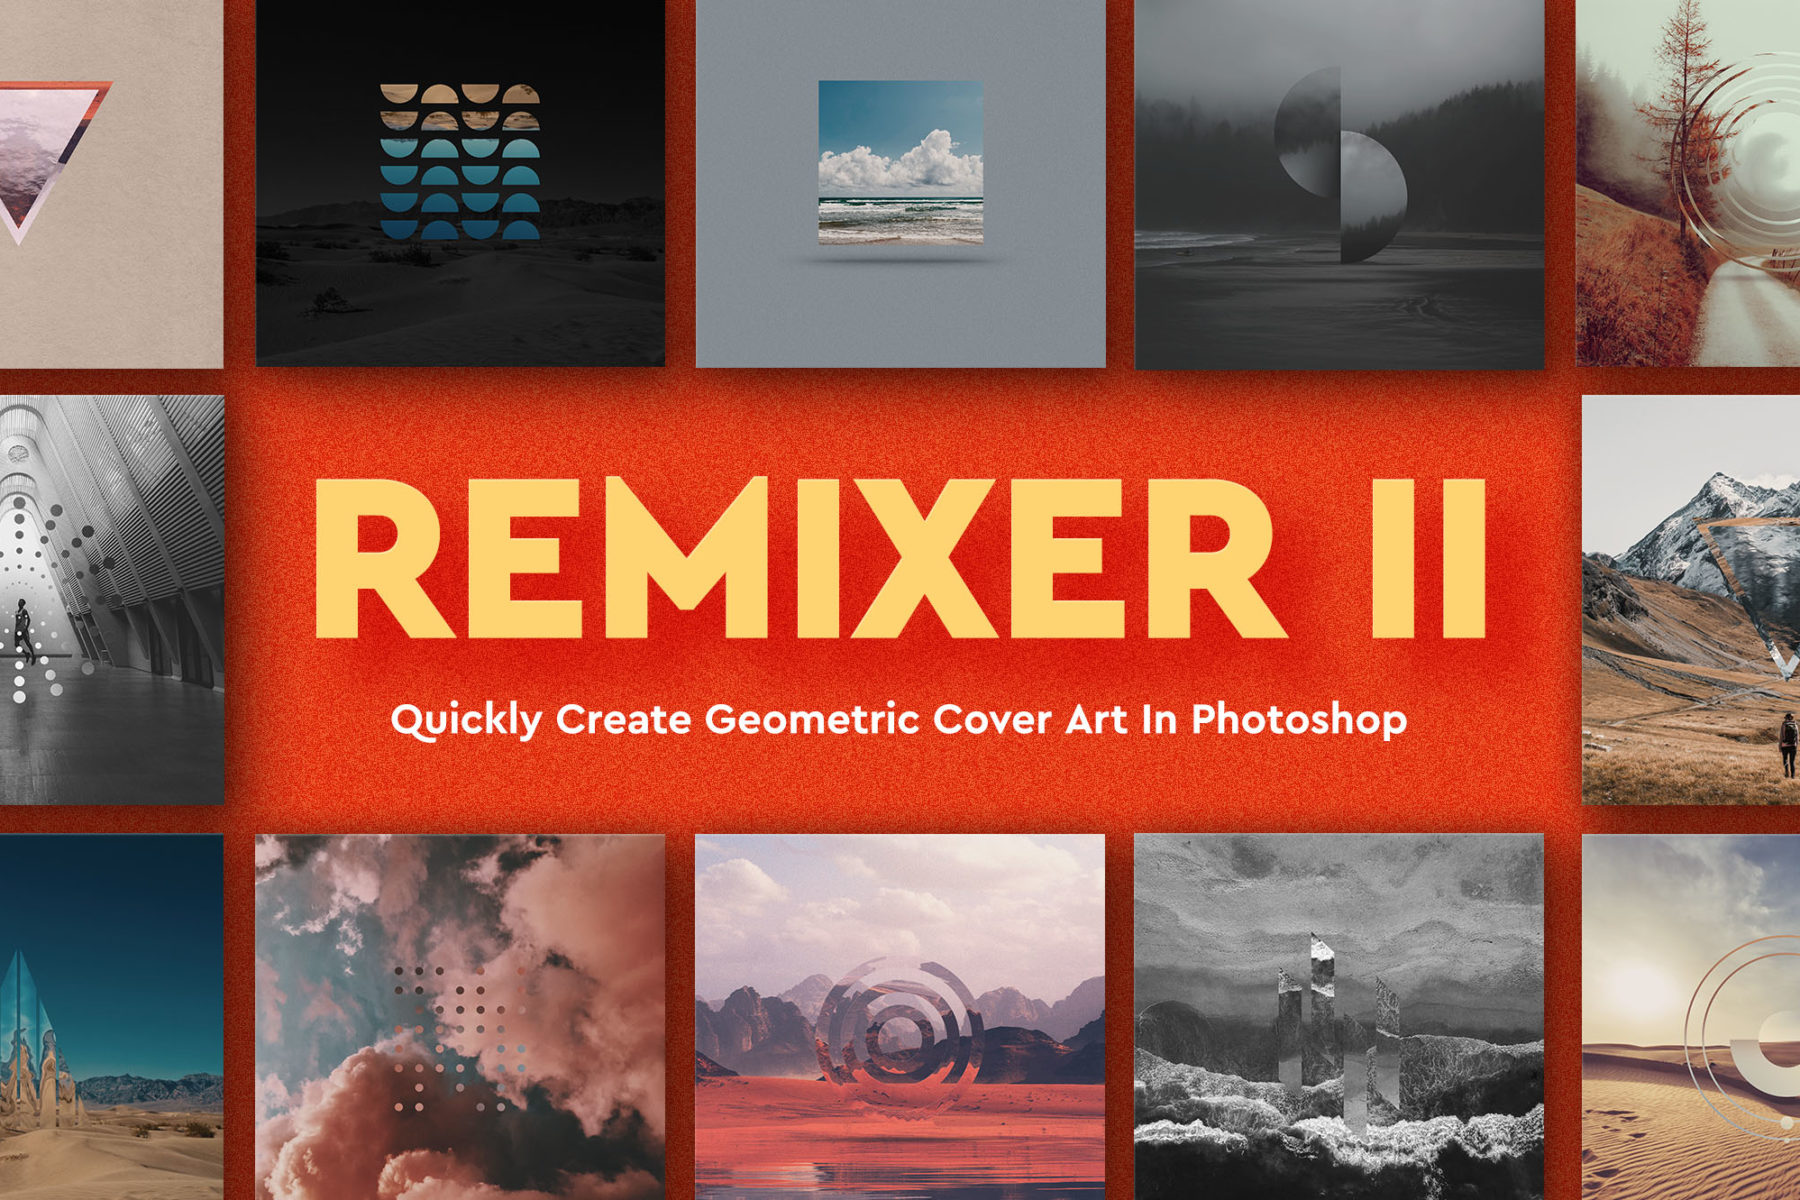 https://nusupply.co/wp-content/uploads/2019/11/Remixer-II-Preview-Cover-1800x1200.jpg